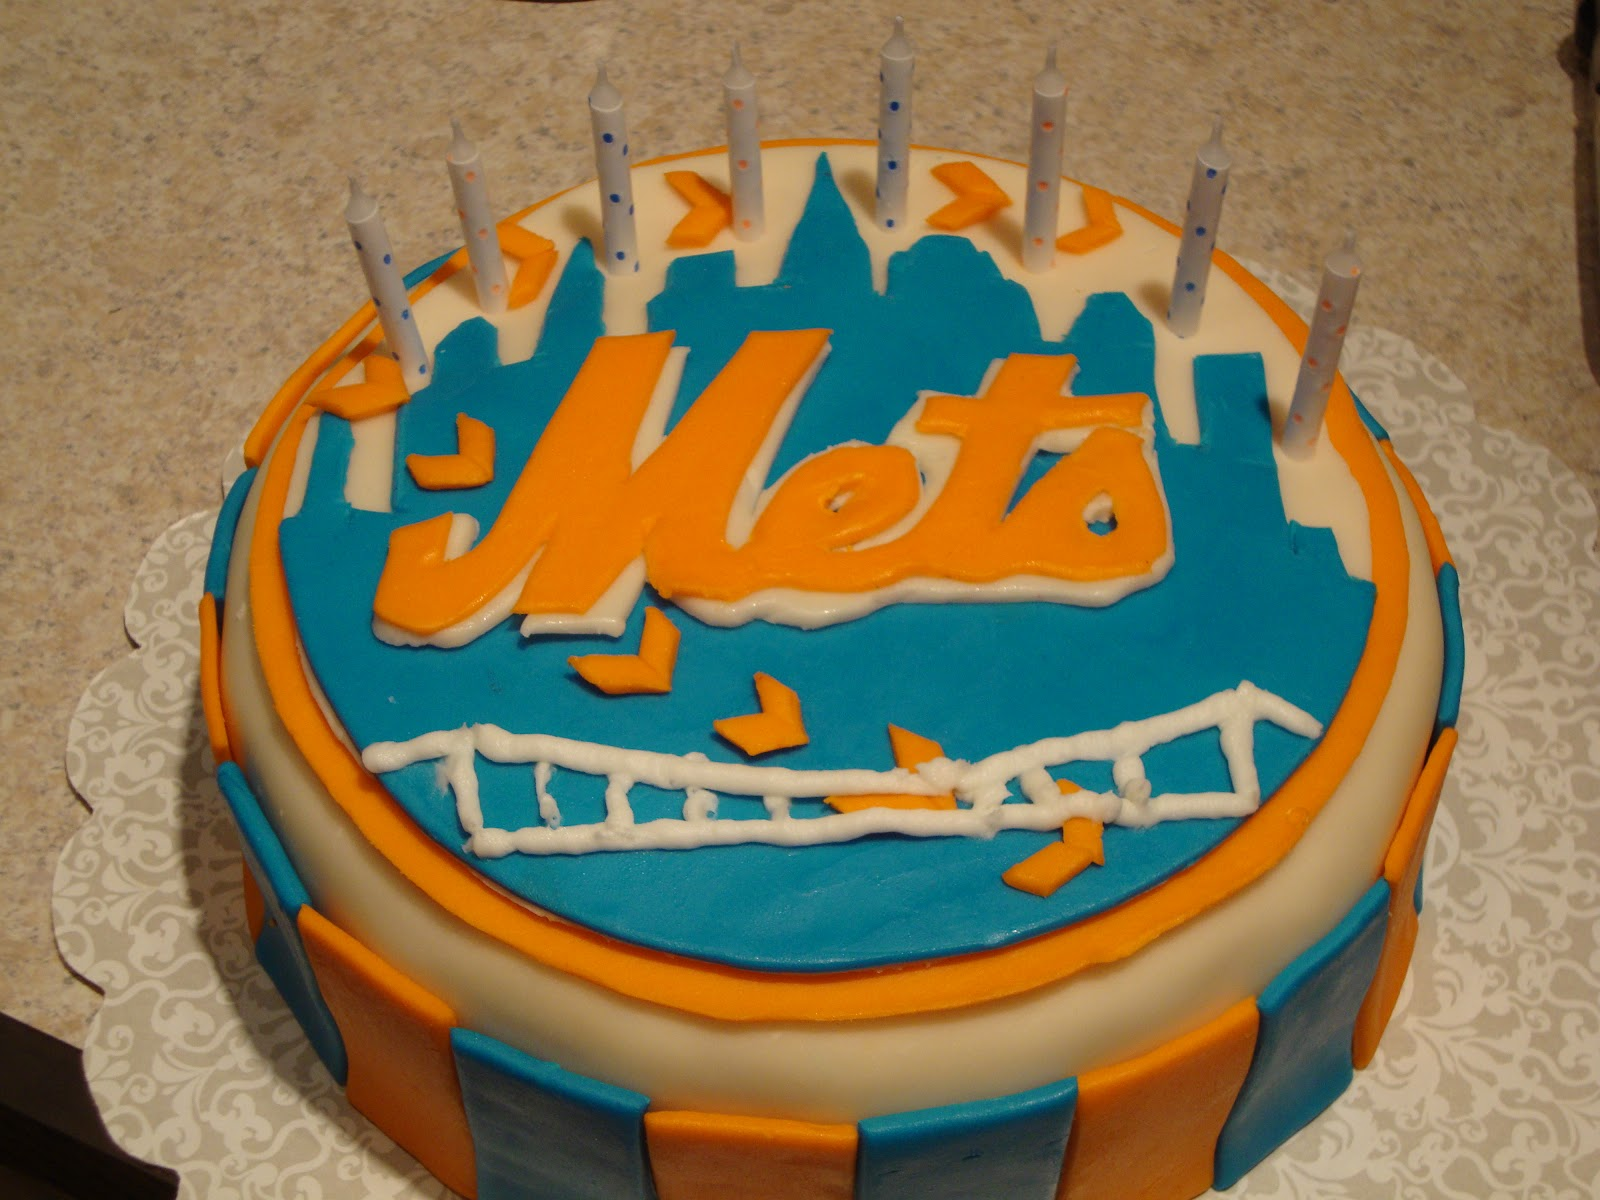 I Made Orange And Blue Stripes On The Side Of Cake To Add A Finishing Touch Think Came Out Pretty Good